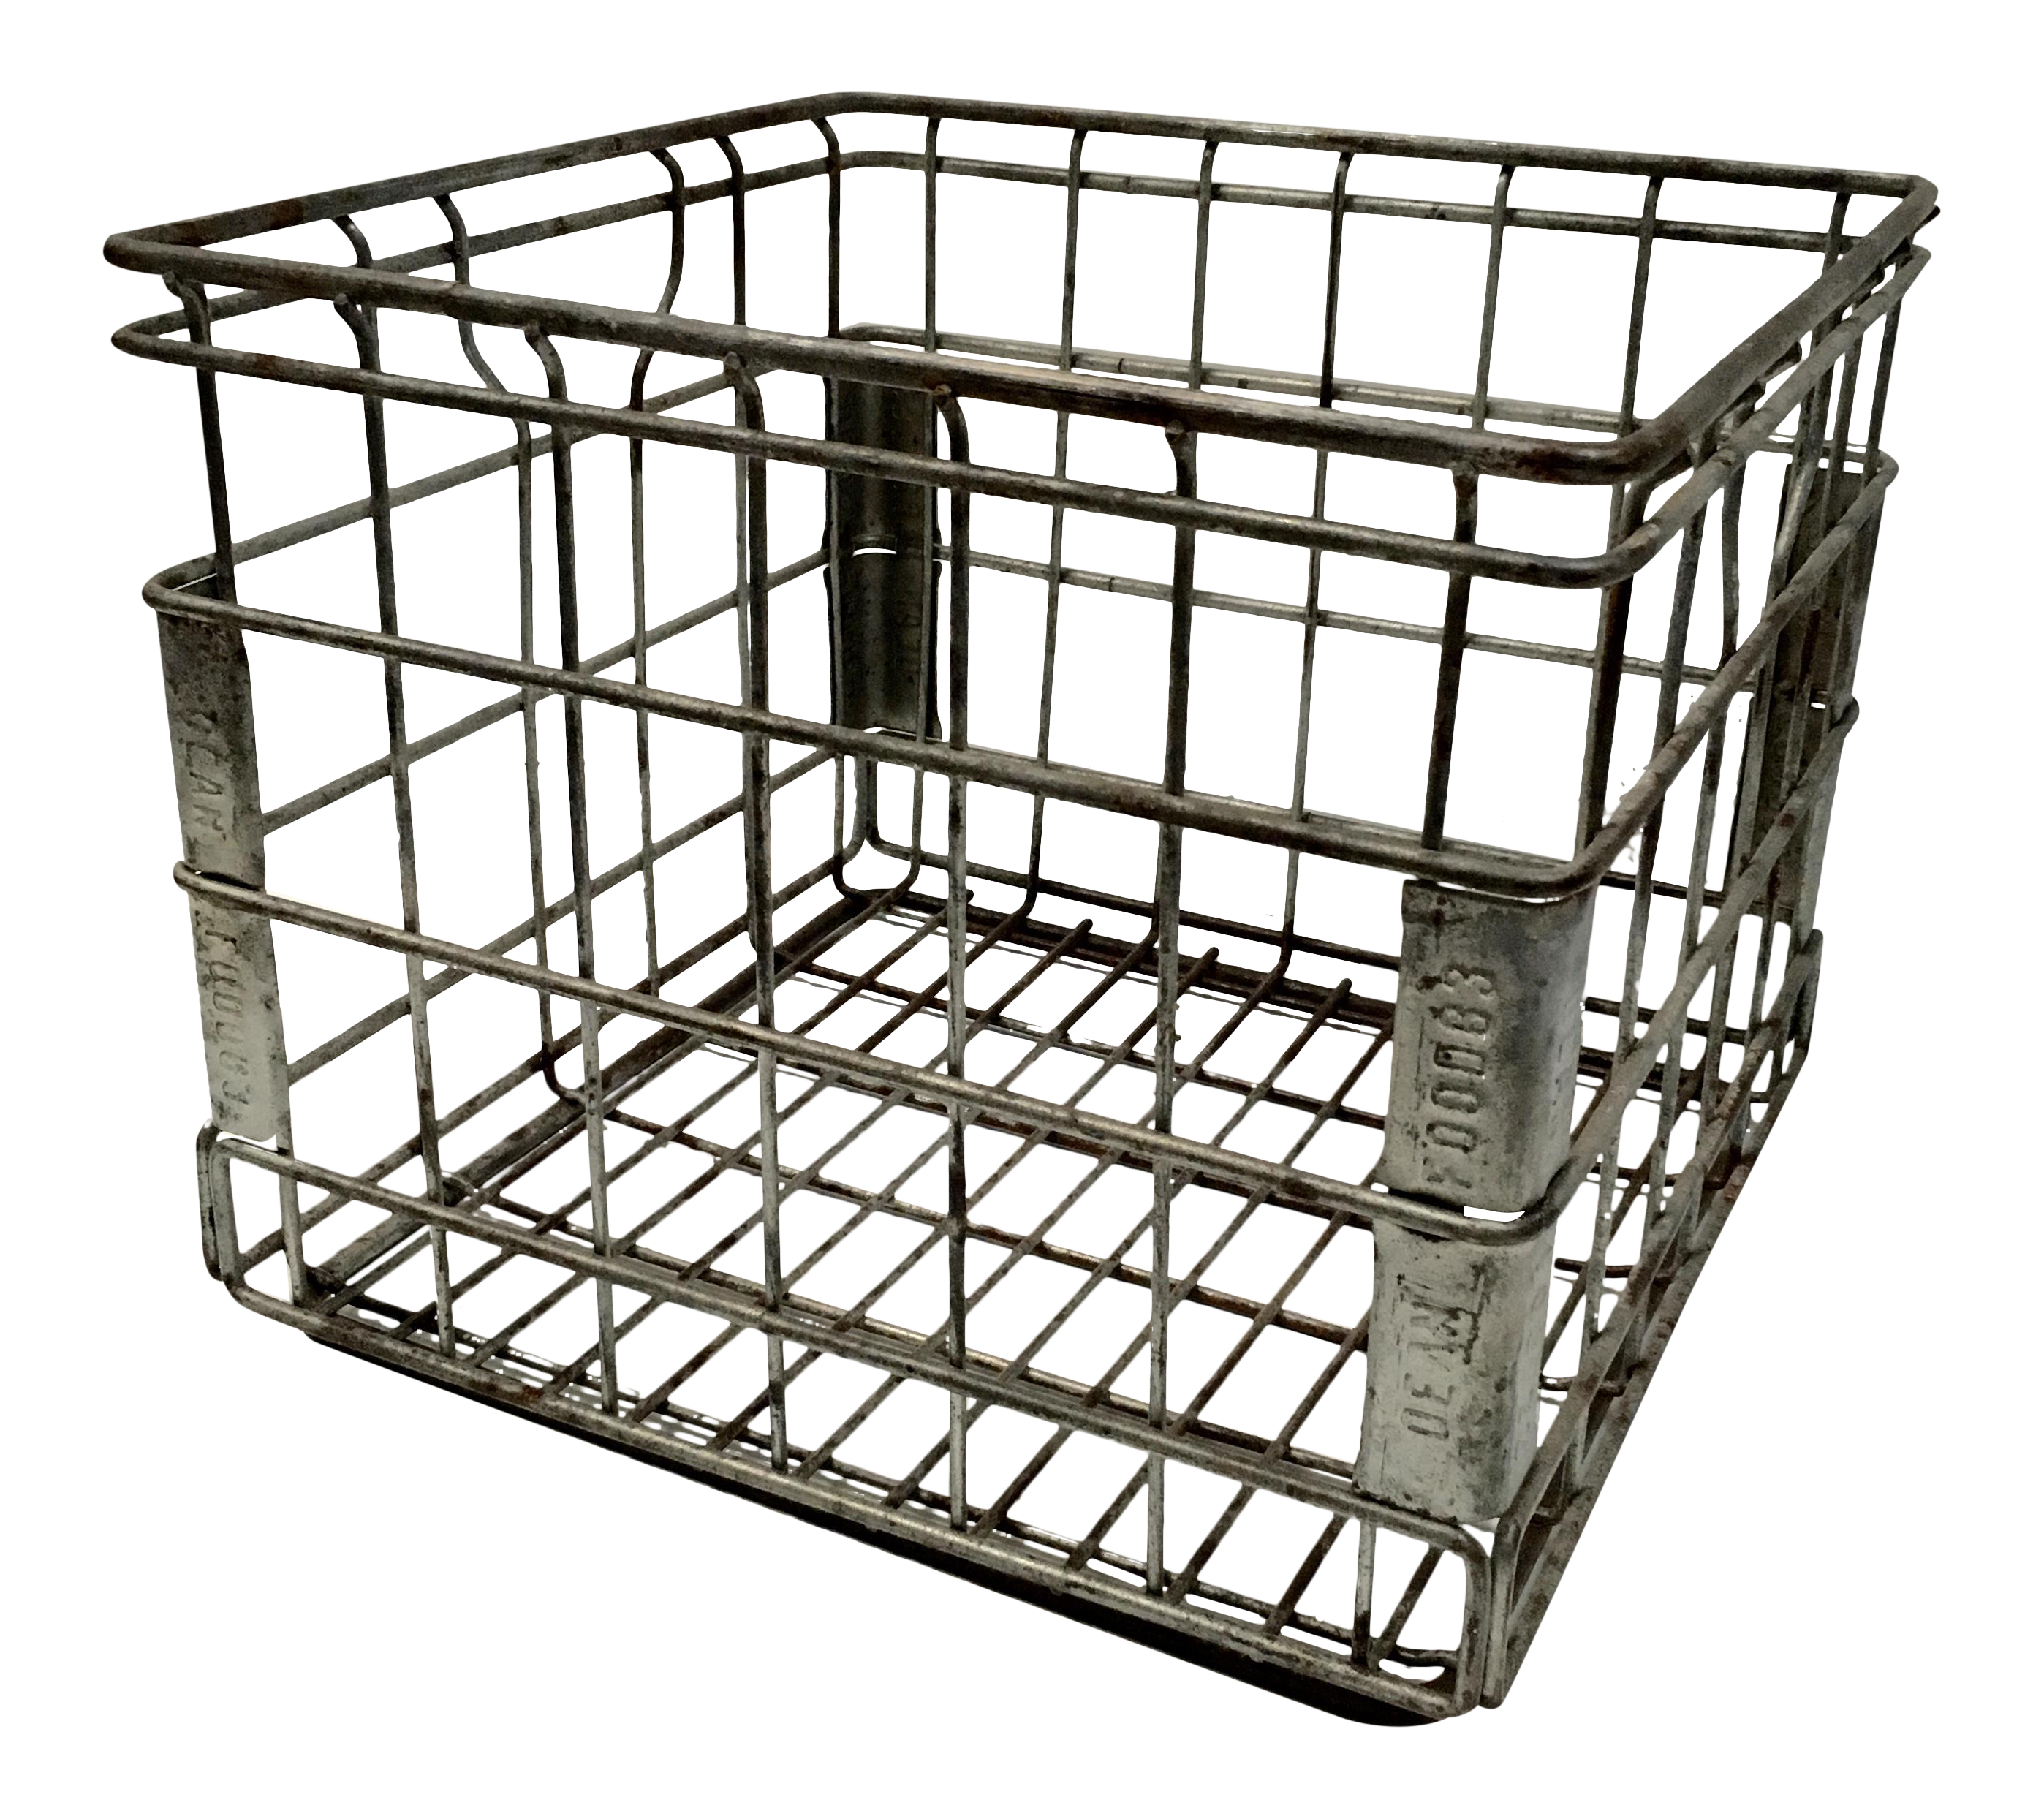 Milk crate png. Vintage metal for dean